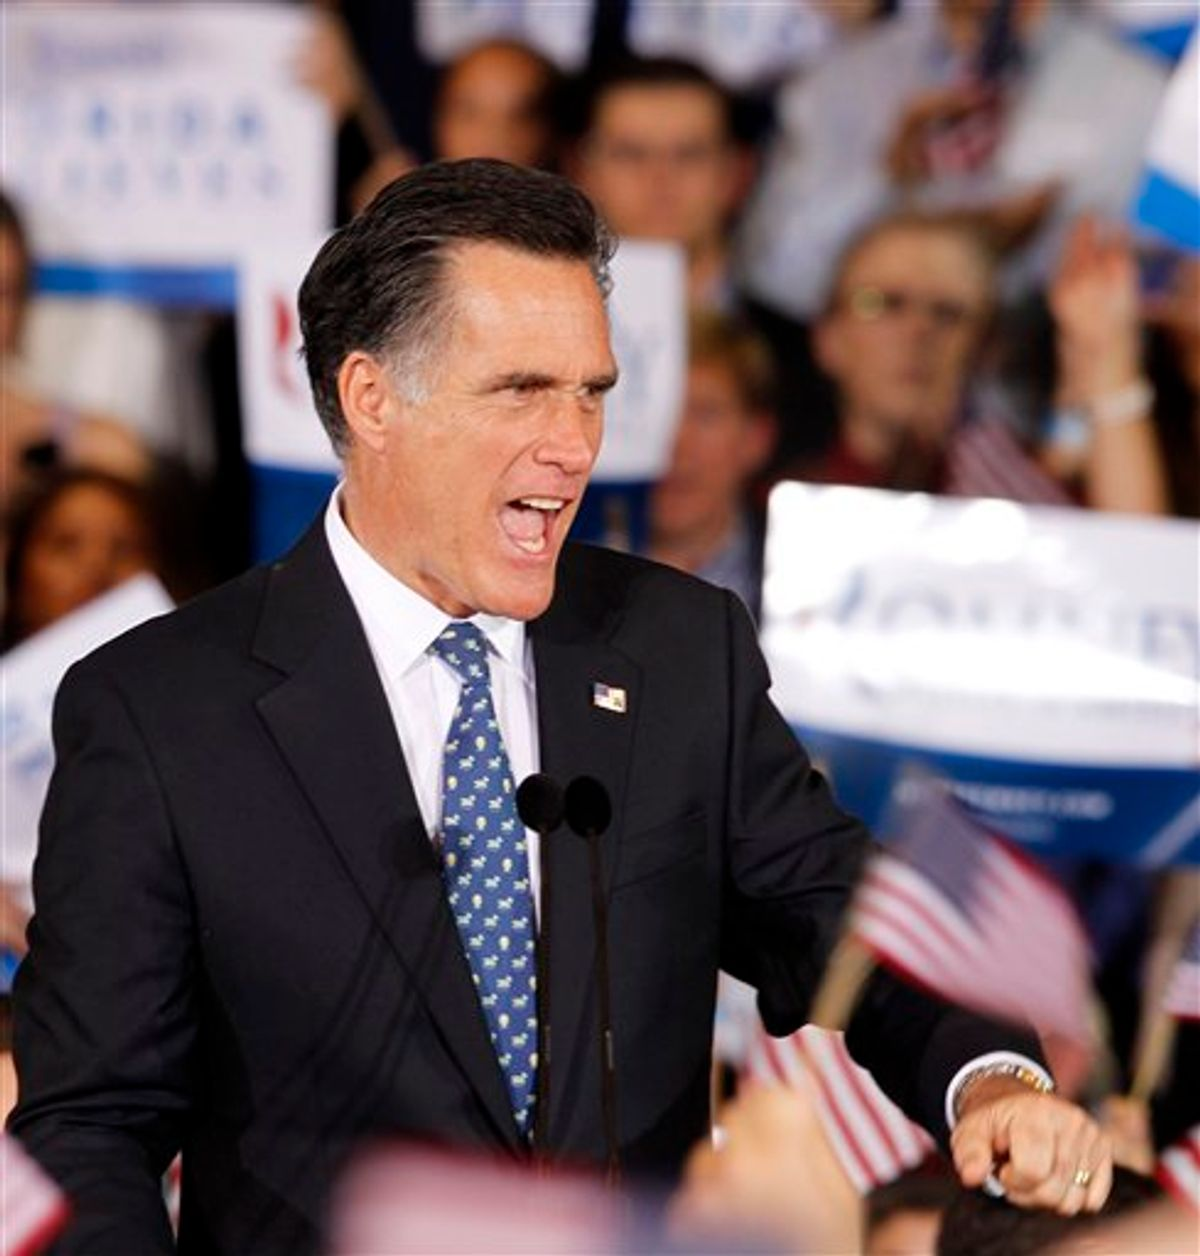 Republican presidential candidate, former Massachusetts Gov. Mitt Romney, reacts to supporters at his Florida primary primary night rally in Tampa, Fla., Tuesday, Jan. 31, 2012. (AP Photo/Gerald Herbert)         (AP)